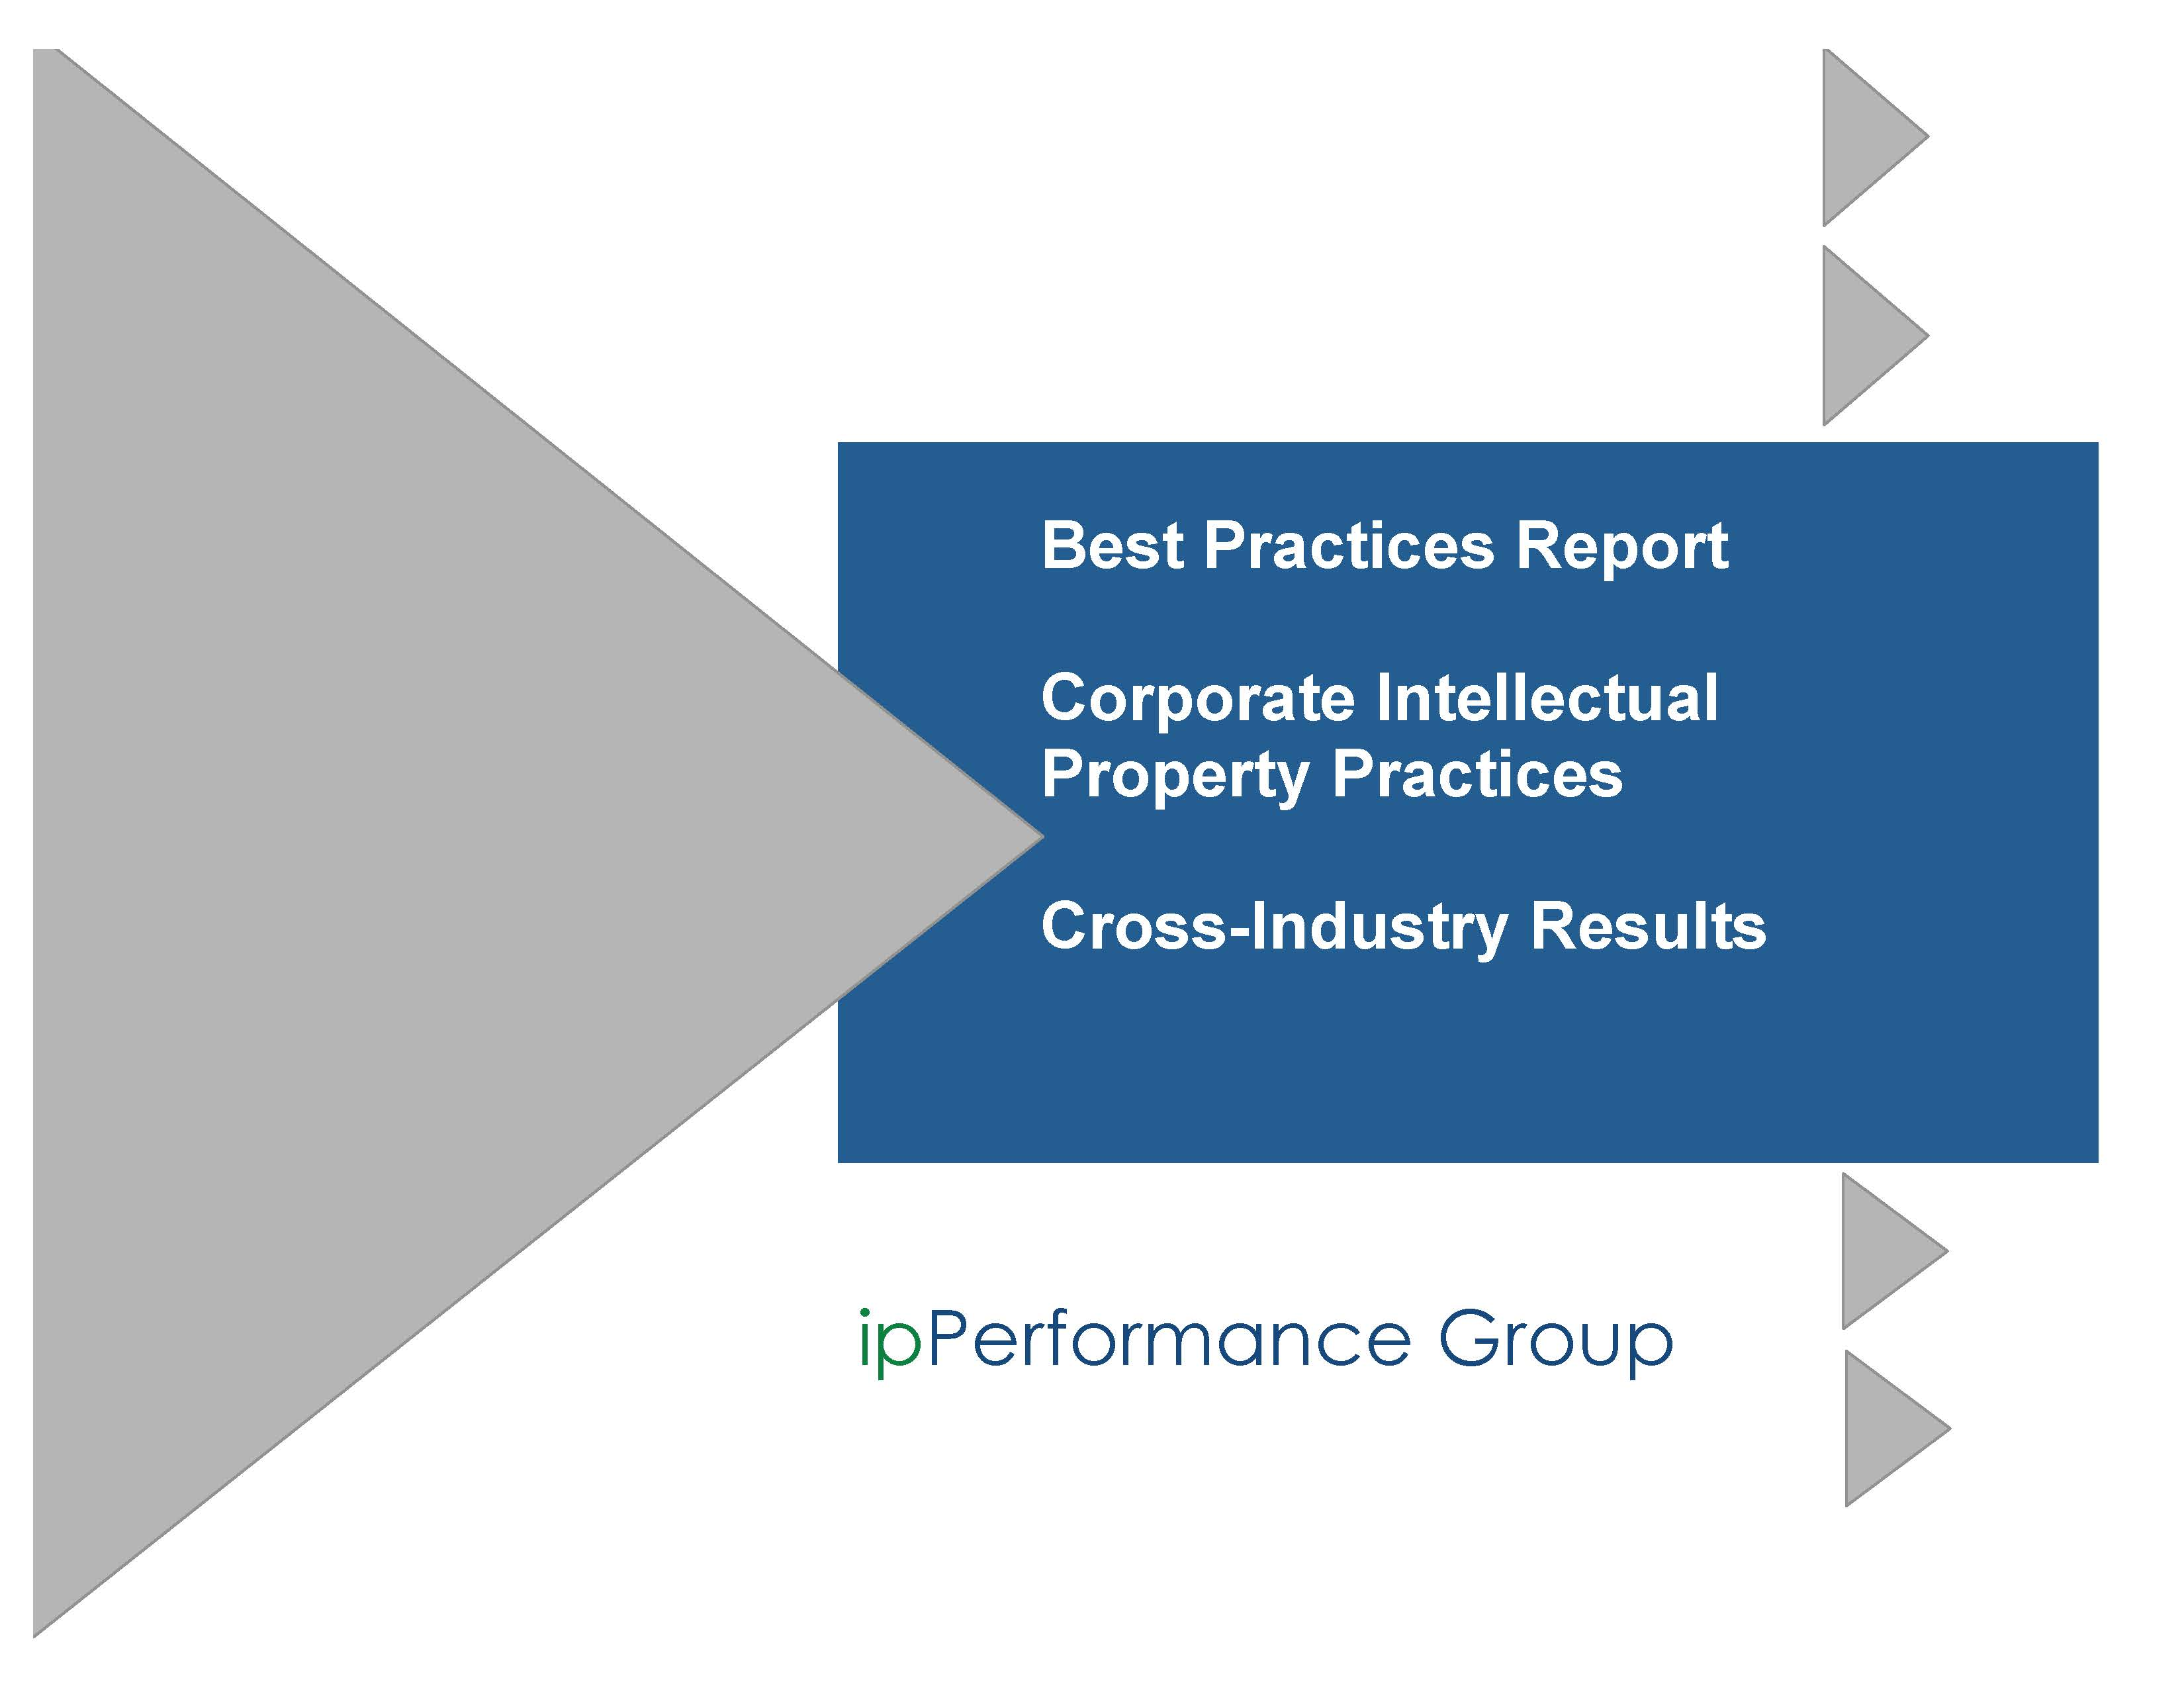 Corporate Intellectual Property Law Department Practices Report